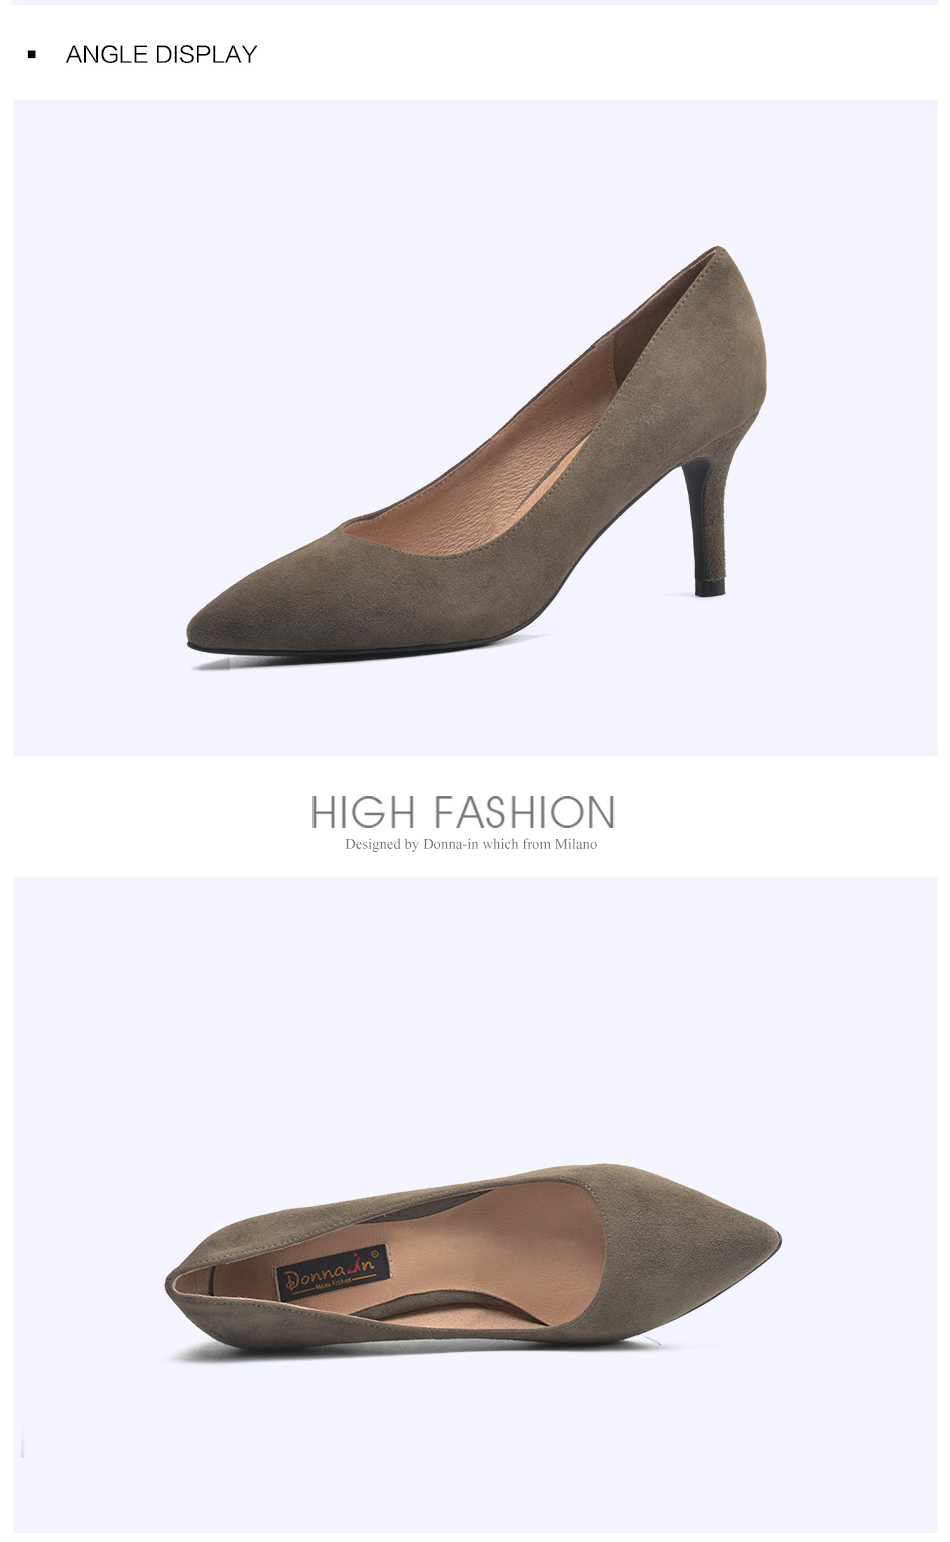 ... Donna-in 2017 Newest women Pumps Genuine suede leather Thin Heel  Pointed Toe Spring heels ... 4c9c1d8e0021